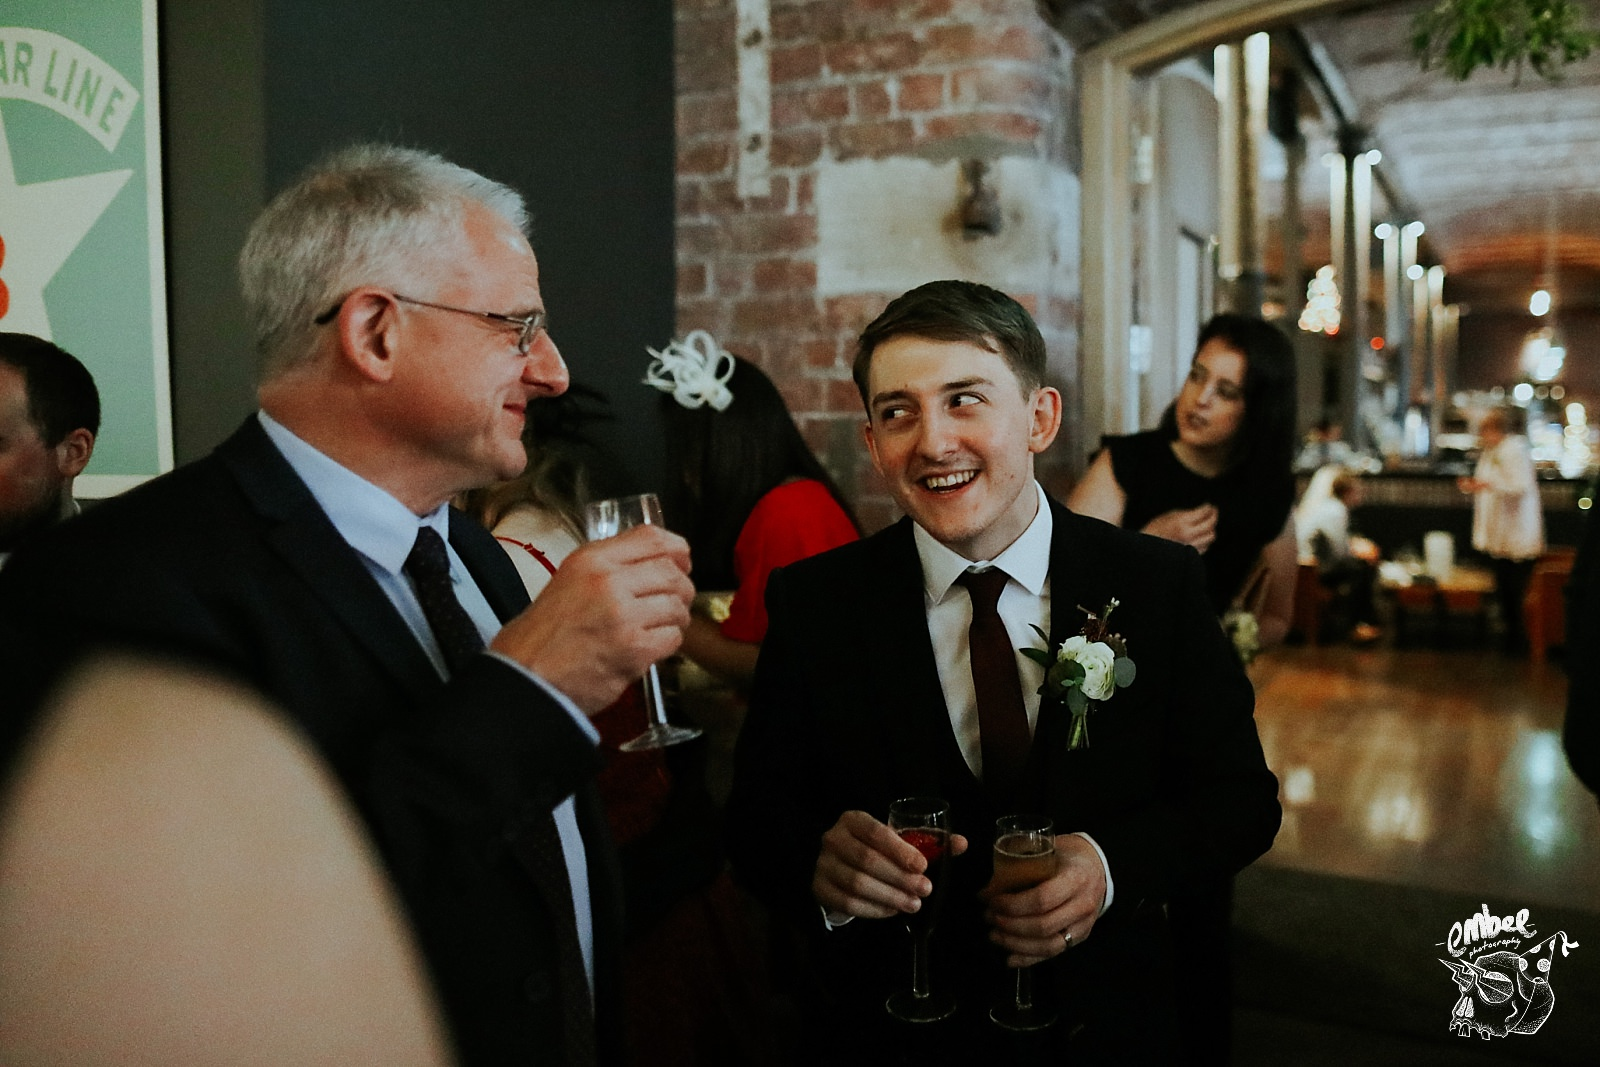 groom laughing with guest